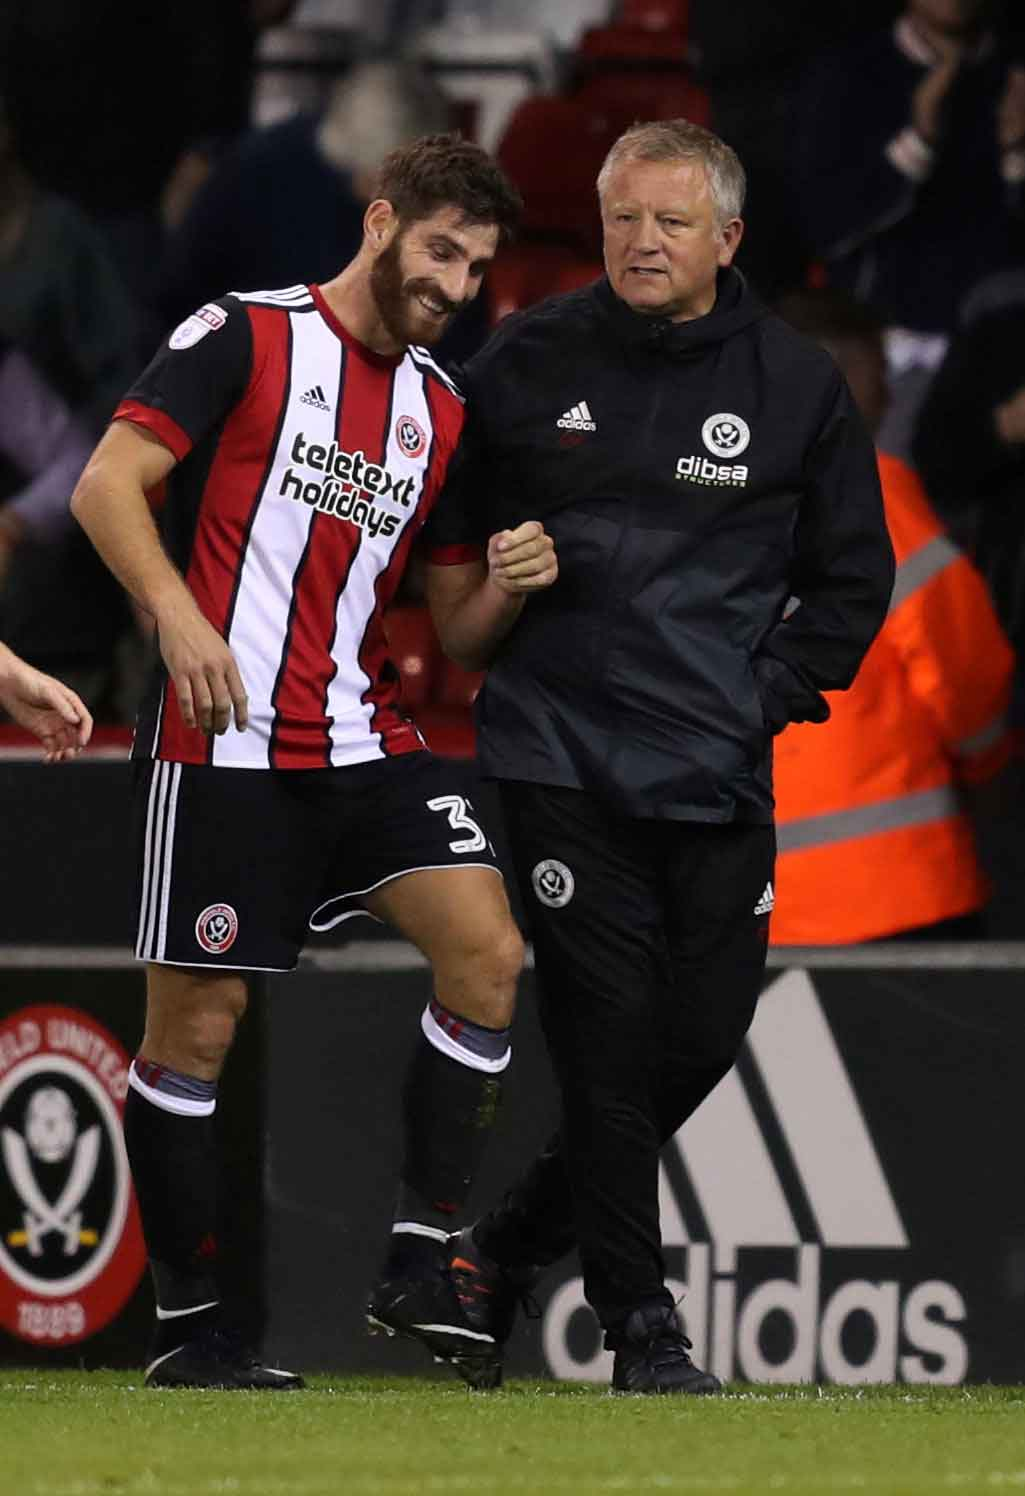 Chris Wilder to leave Sheffield United for the Premier League?